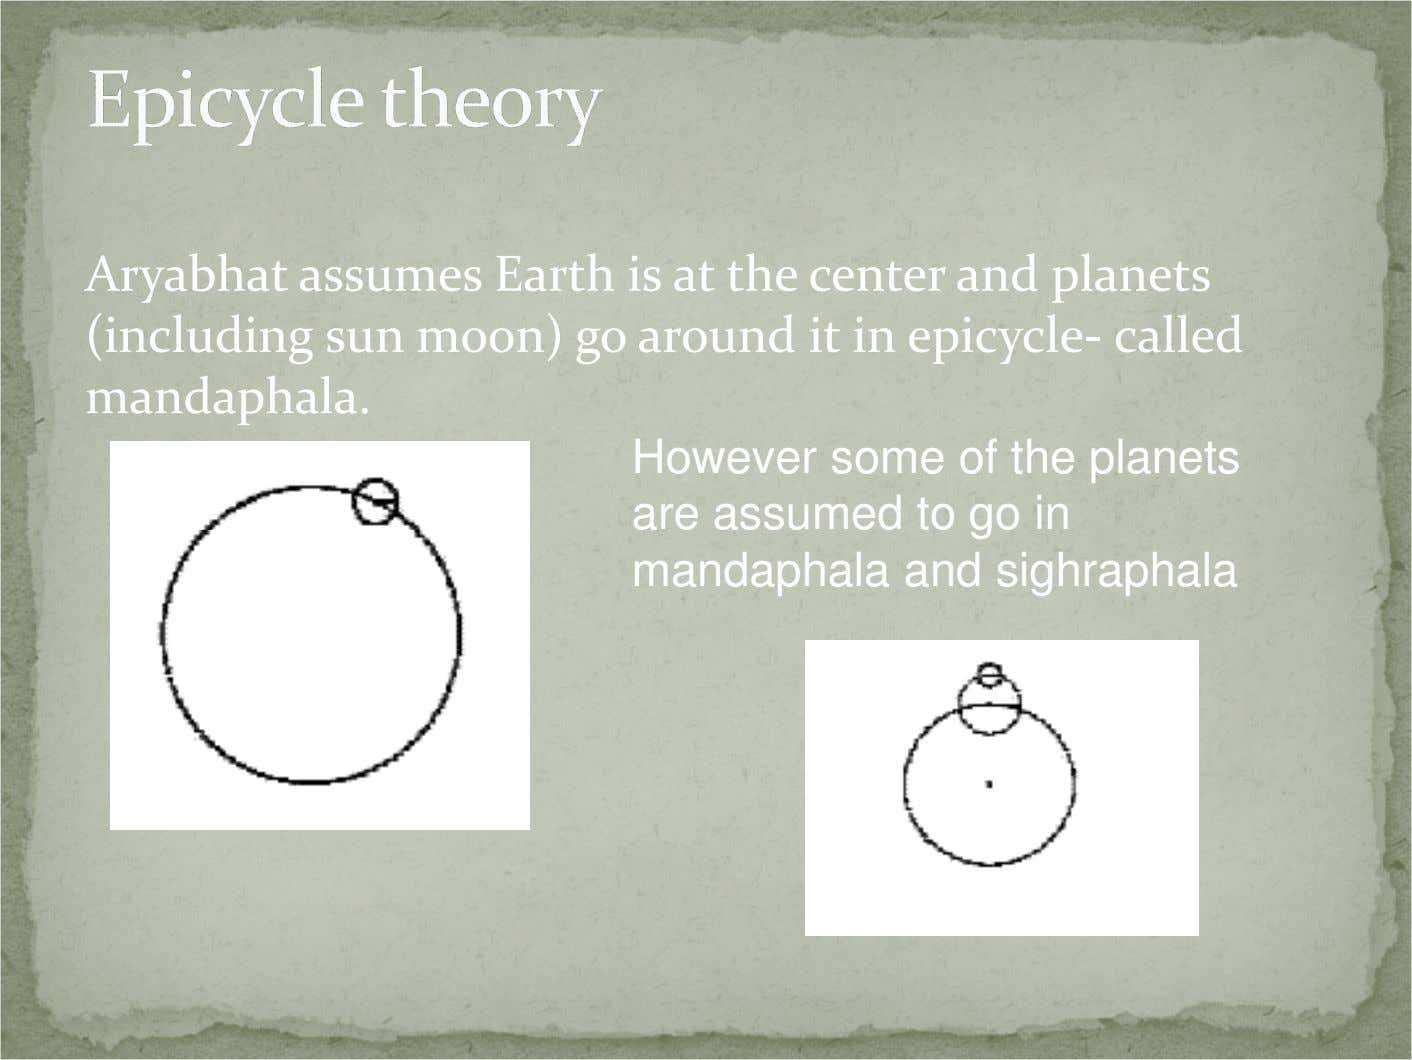 Aryabhat assumes Earth is at the center and planets (including sun moon) go around it